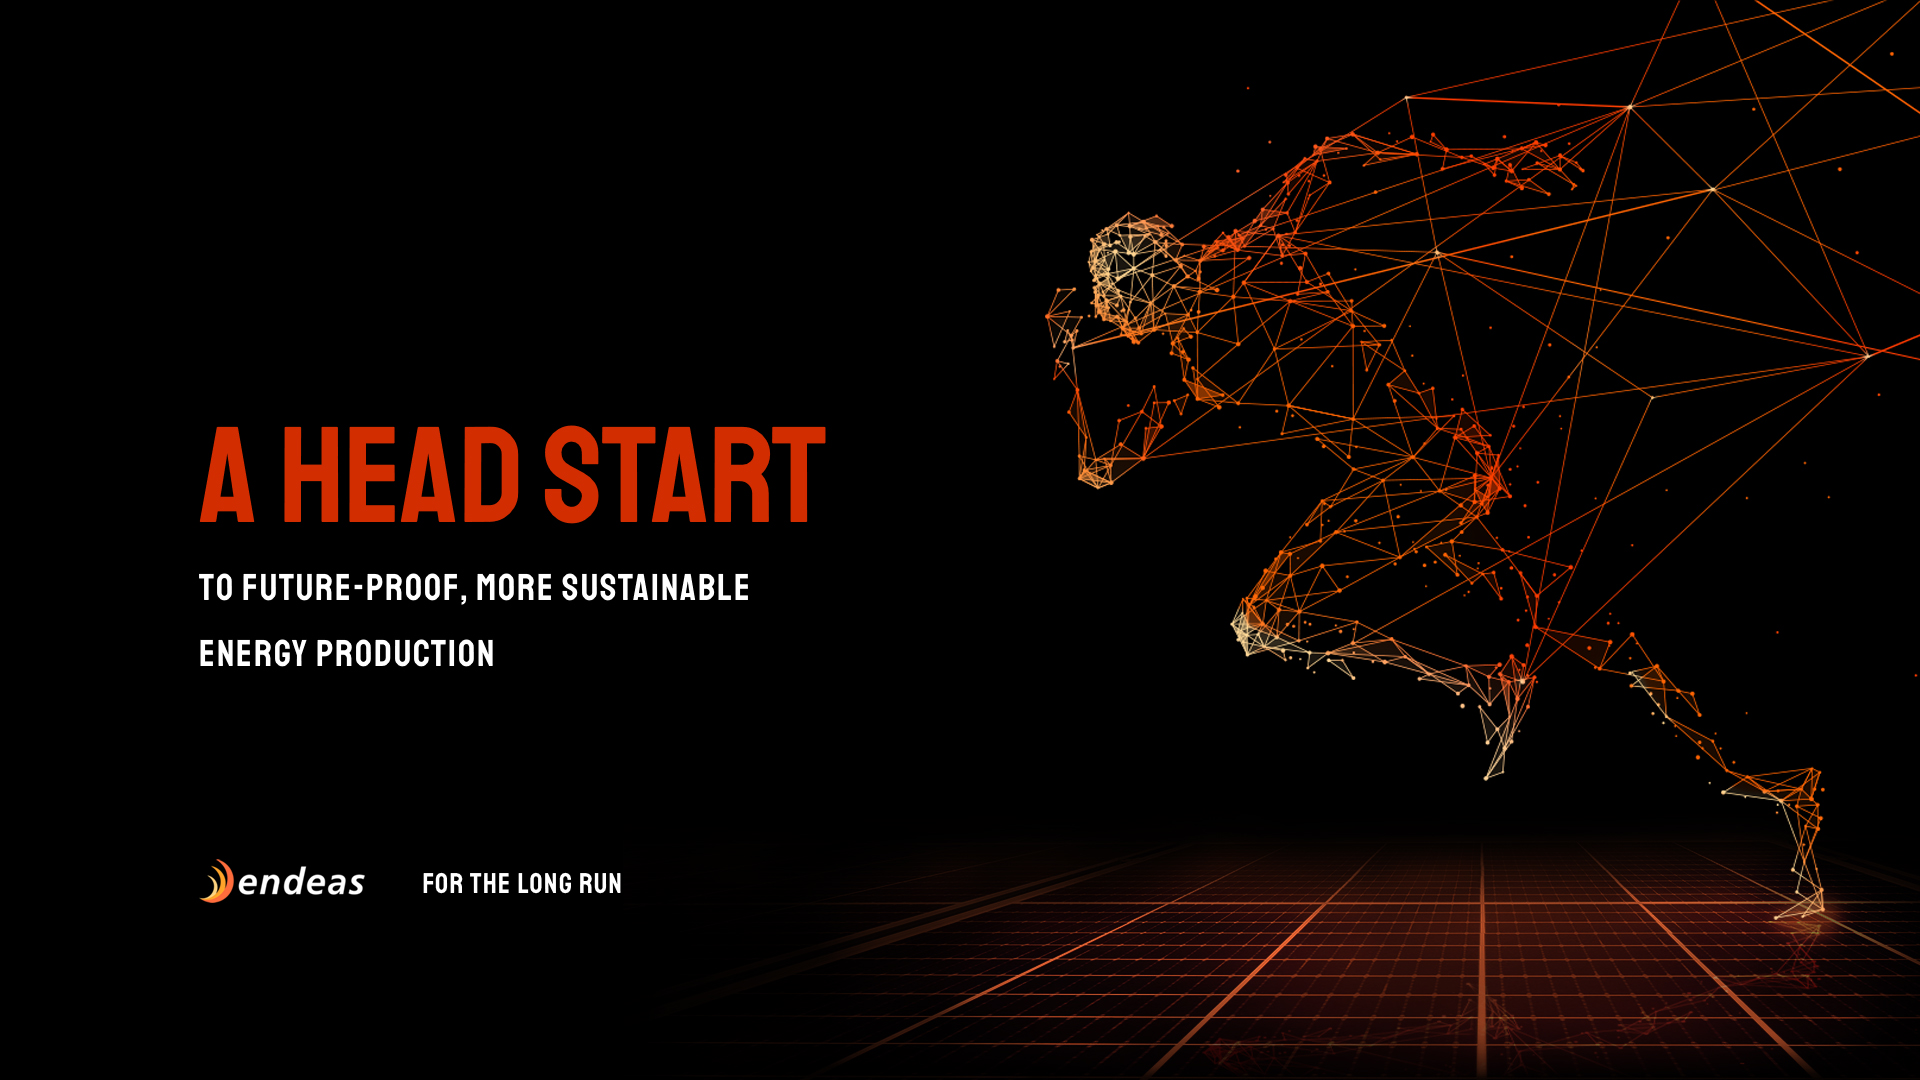 Endeas brand image - A head start to future-proof, more sustainable energy production